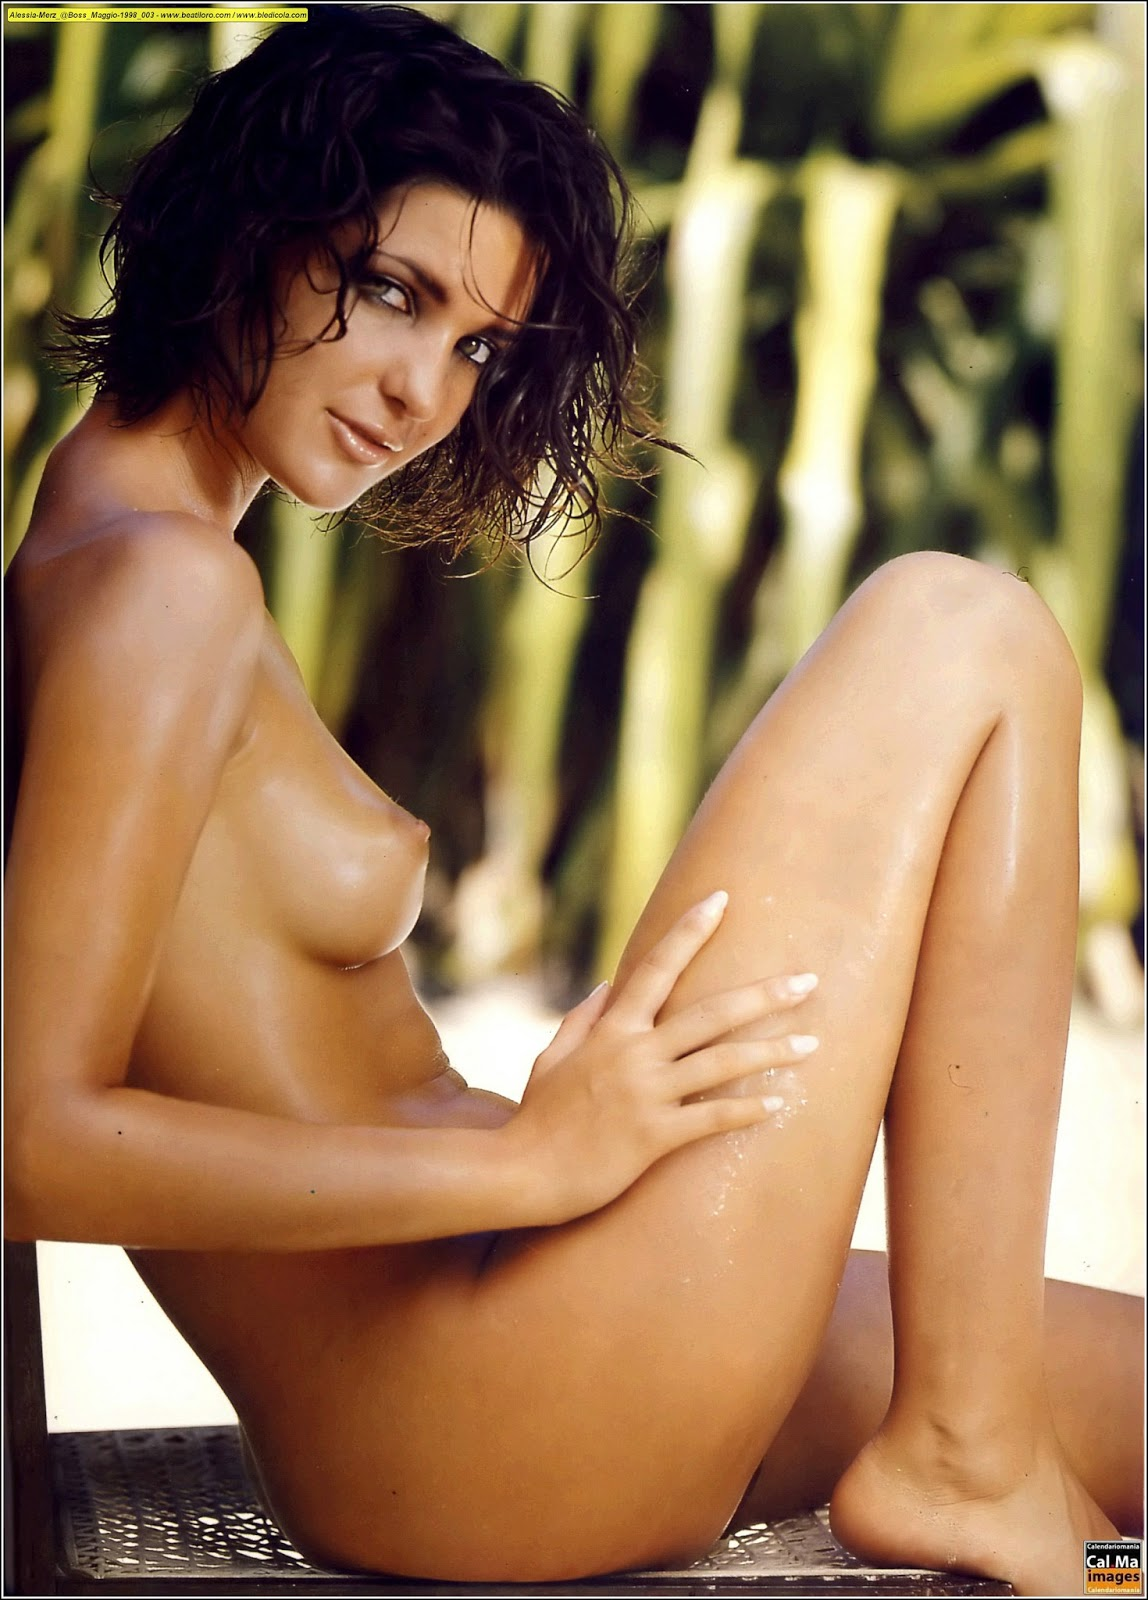 from Beckett alessia merz nude sexy